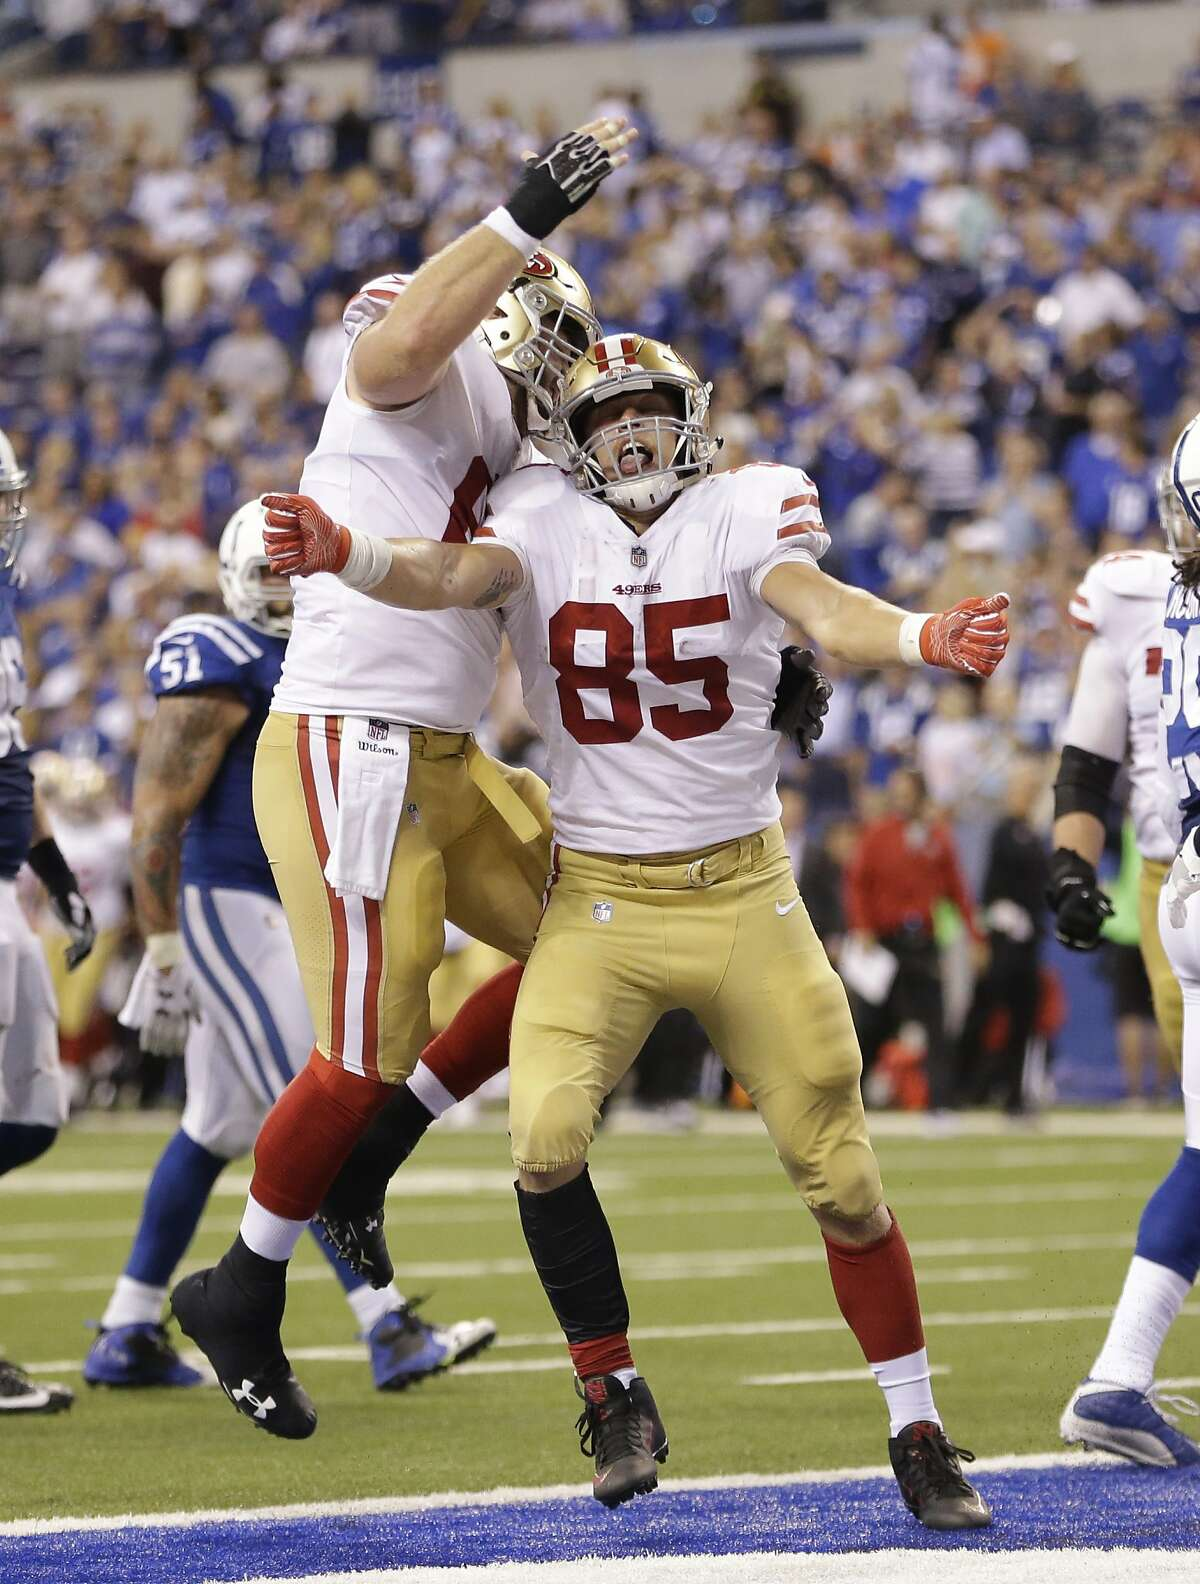 San Francisco 49ers' George Kittle (85) celebrates a five-yard touchdown reception during the second half of an NFL football game against the Indianapolis Colts, Sunday, Oct. 8, 2017, in Indianapolis. (AP Photo/AJ Mast)